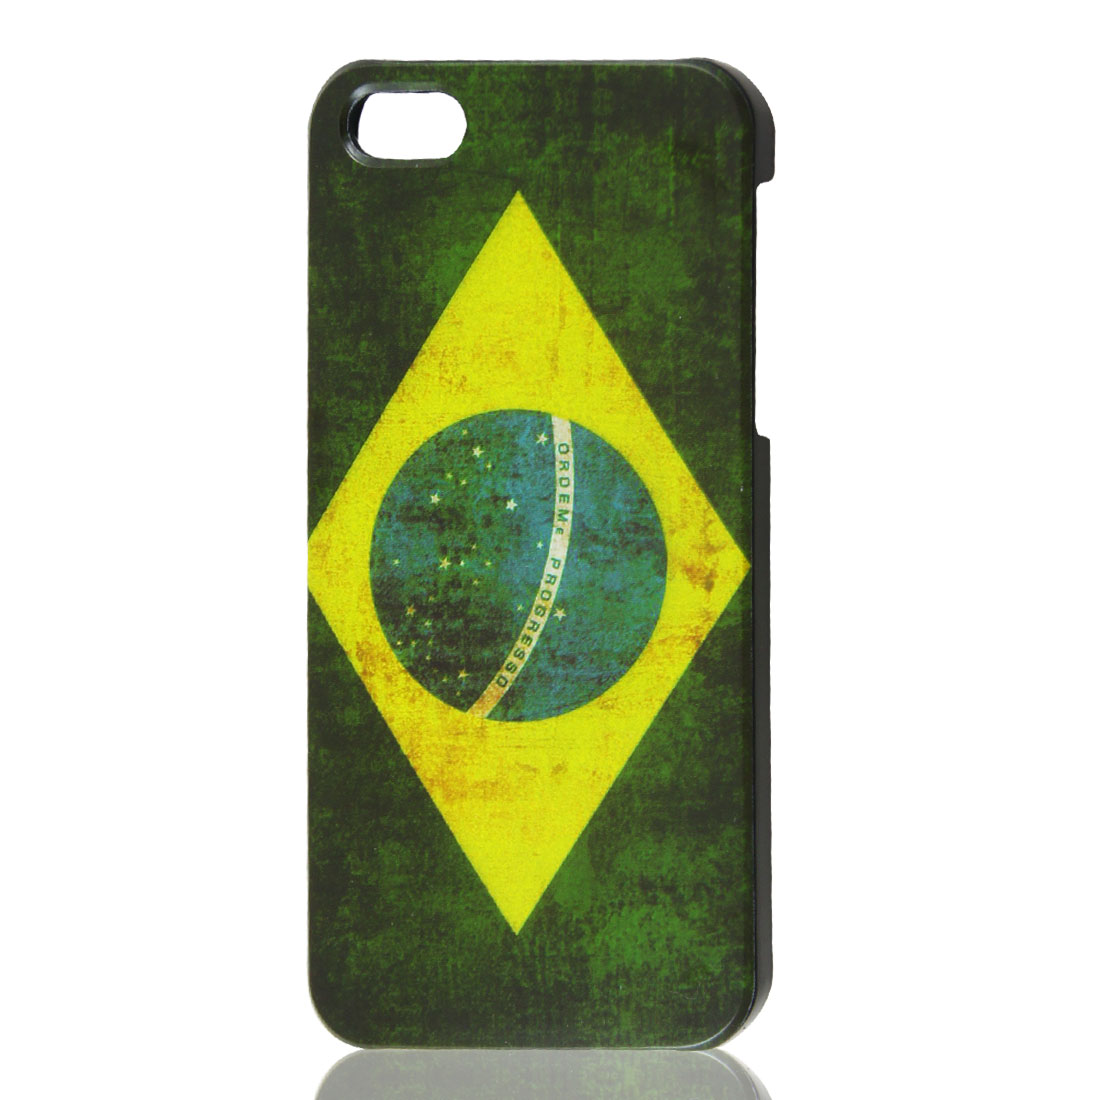 Retro Style Brazil National Flag Hard Case Back Cover Protector for iPhone 5 5G